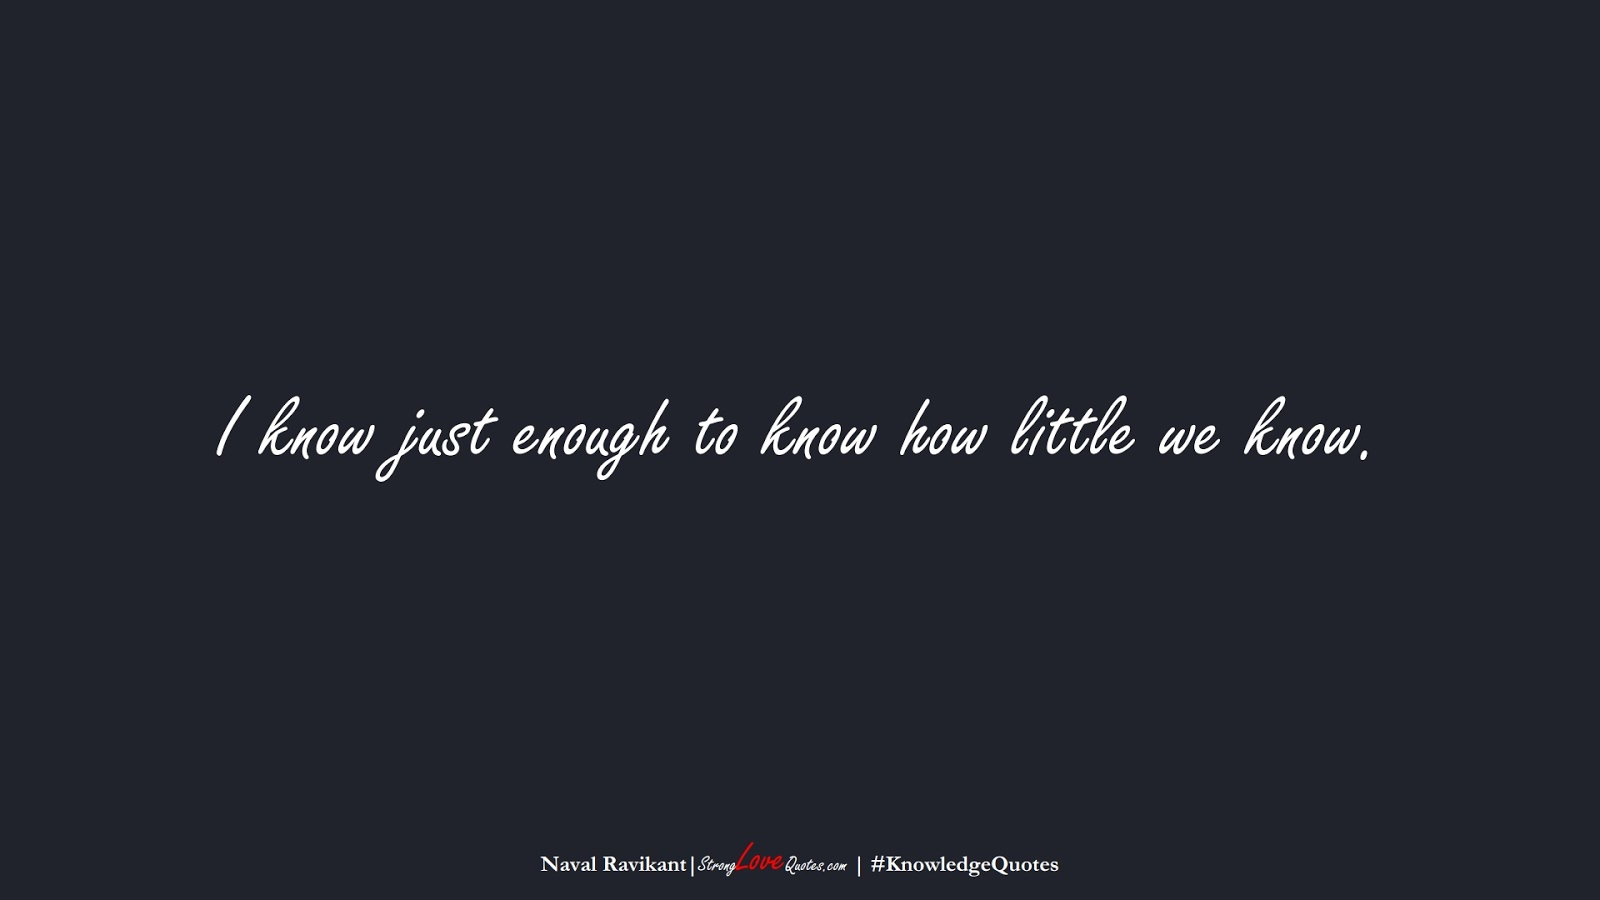 I know just enough to know how little we know. (Naval Ravikant);  #KnowledgeQuotes